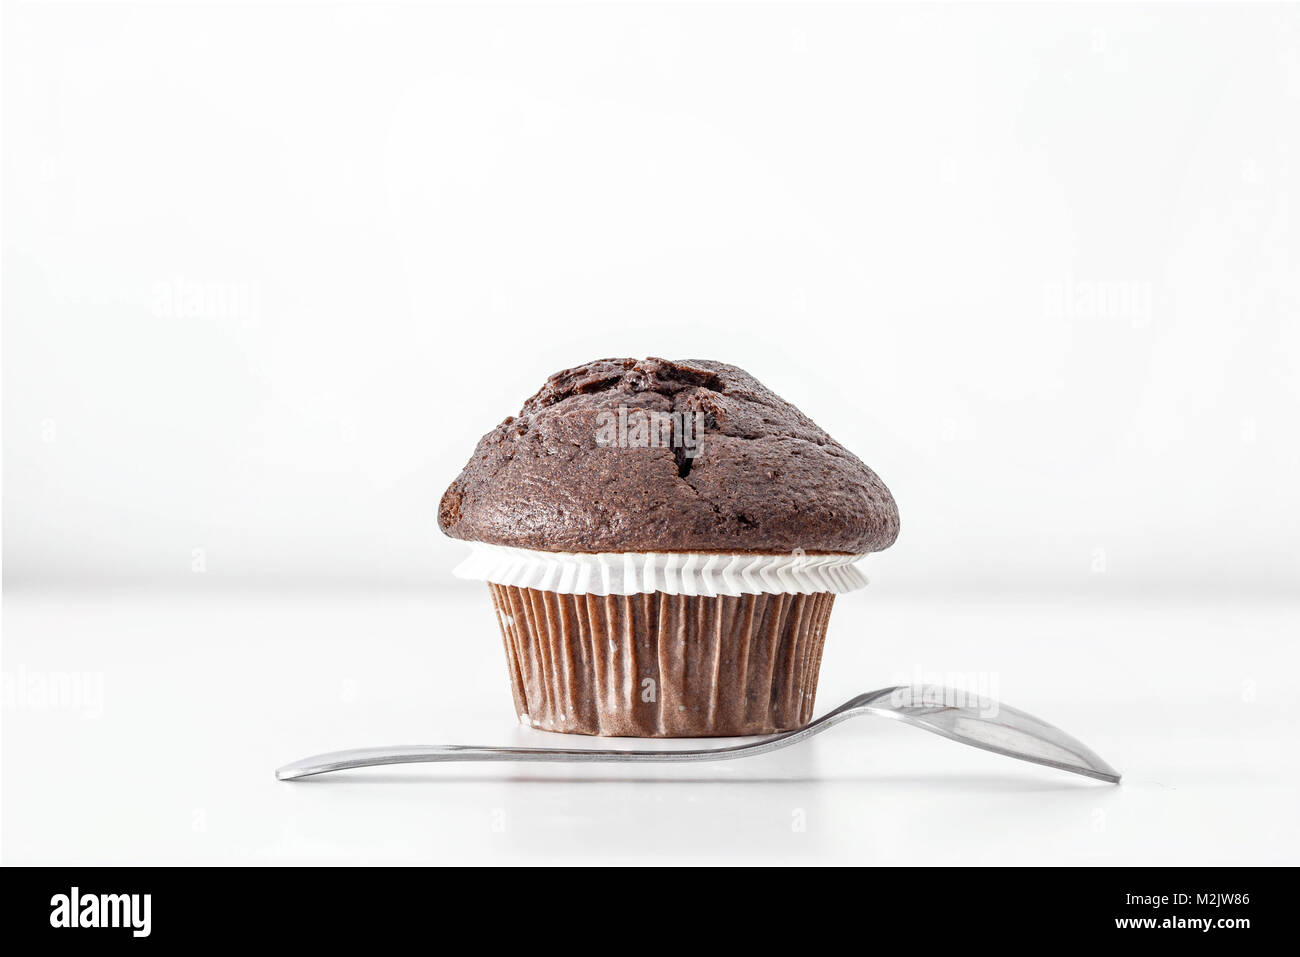 Delicious Chocolate Muffin on white background. Frontal view. Copy Space. - Stock Image